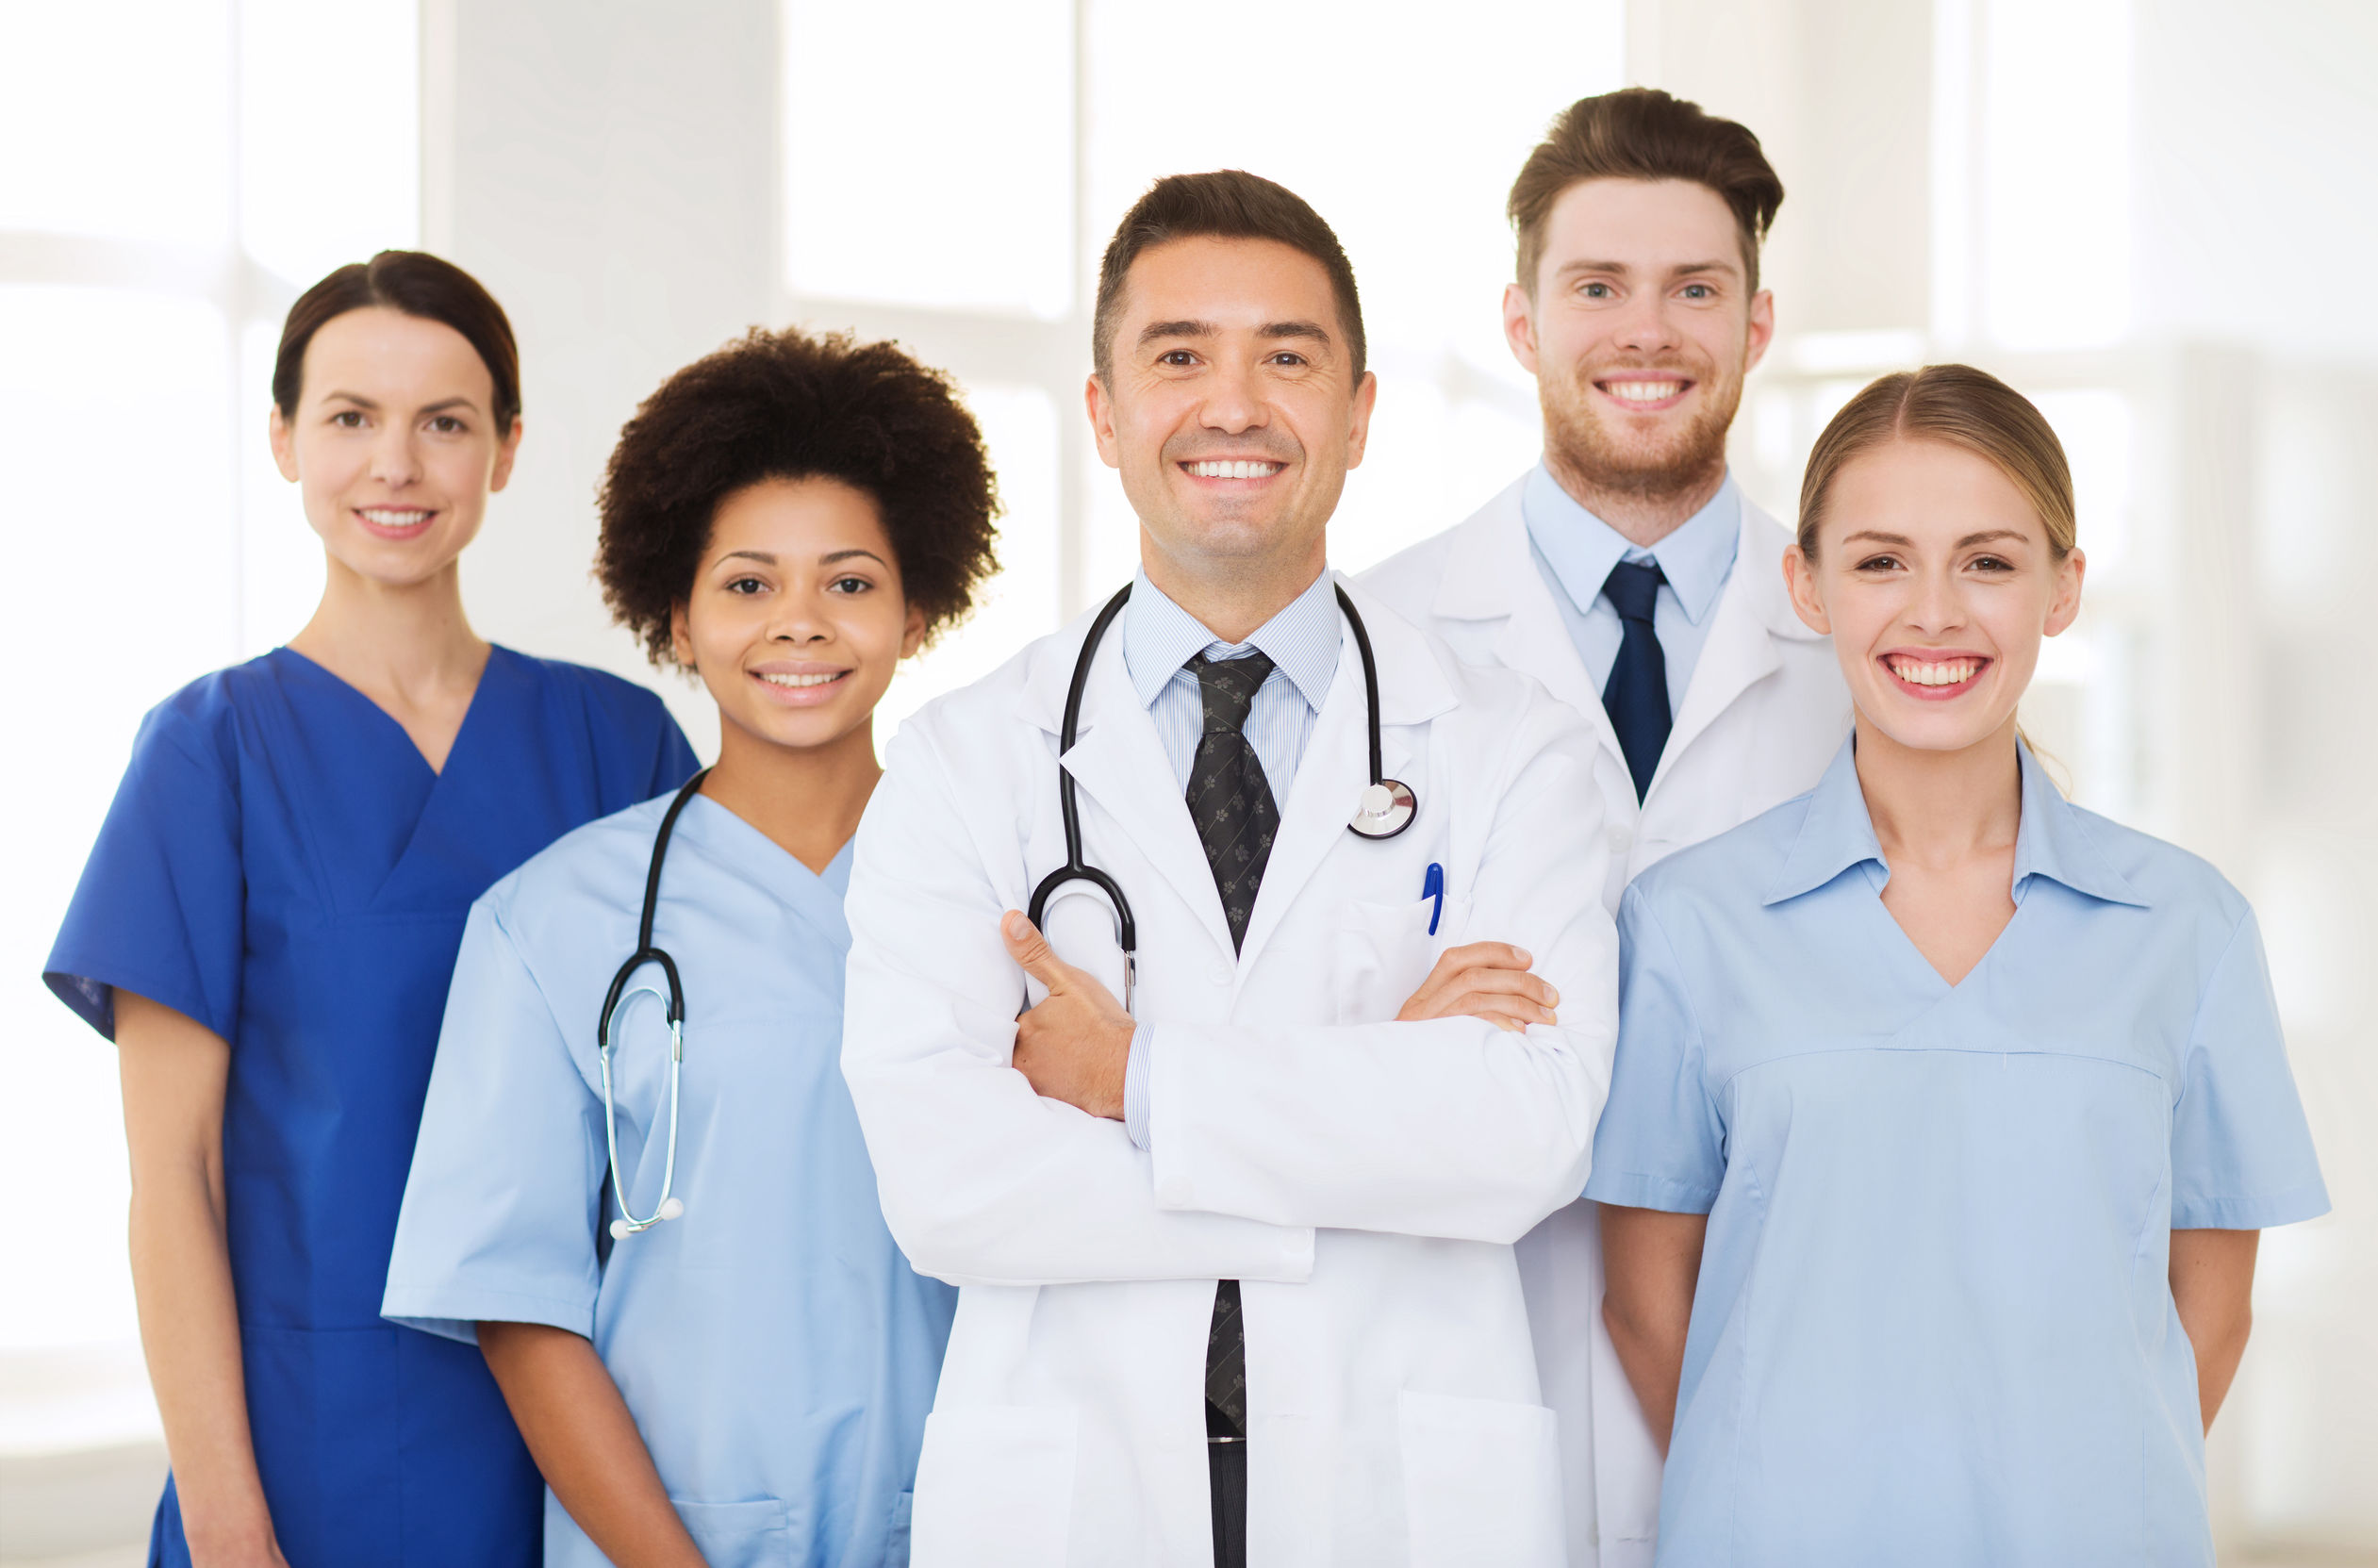 Group of diverse doctors